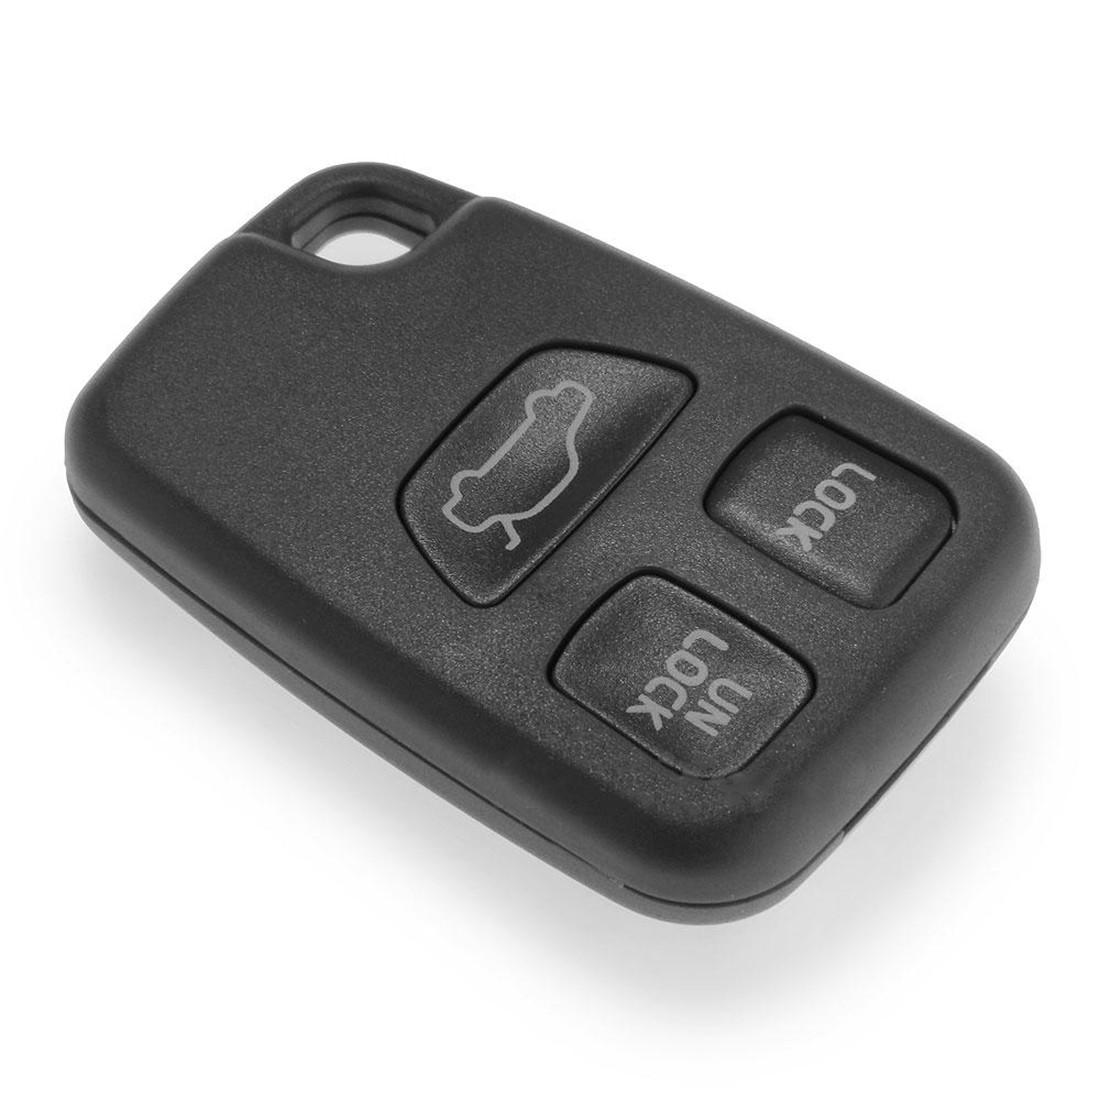 Volvo Key Replacement Cost: 3 Buttons Remote Fob Car Key Shell For Volvo S70 V70 C70